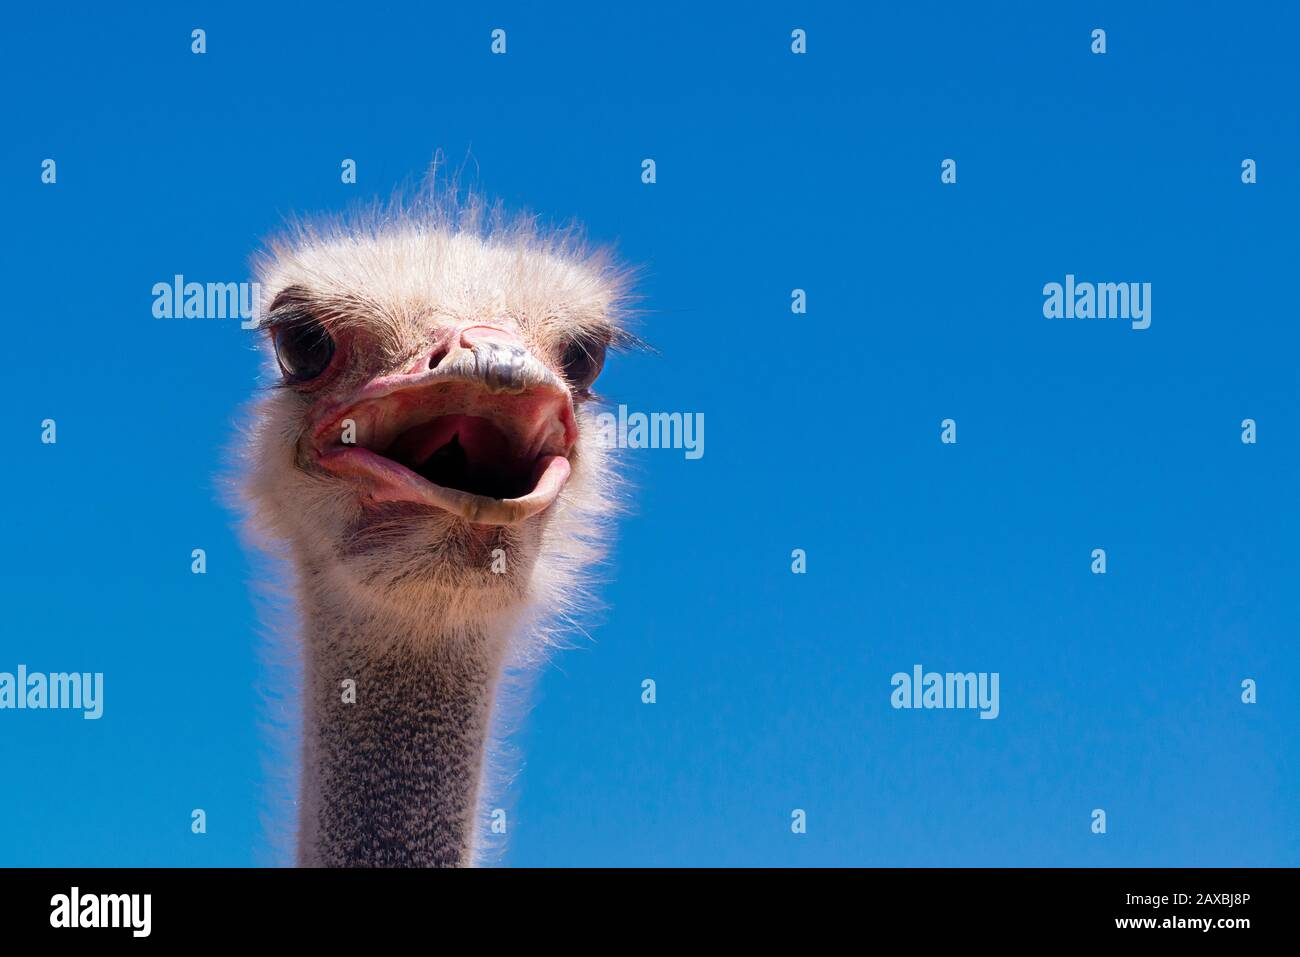 Close-up of ostrich head with its beak open - Oudtshoorn, Western Cape Province, South Africa Stock Photo